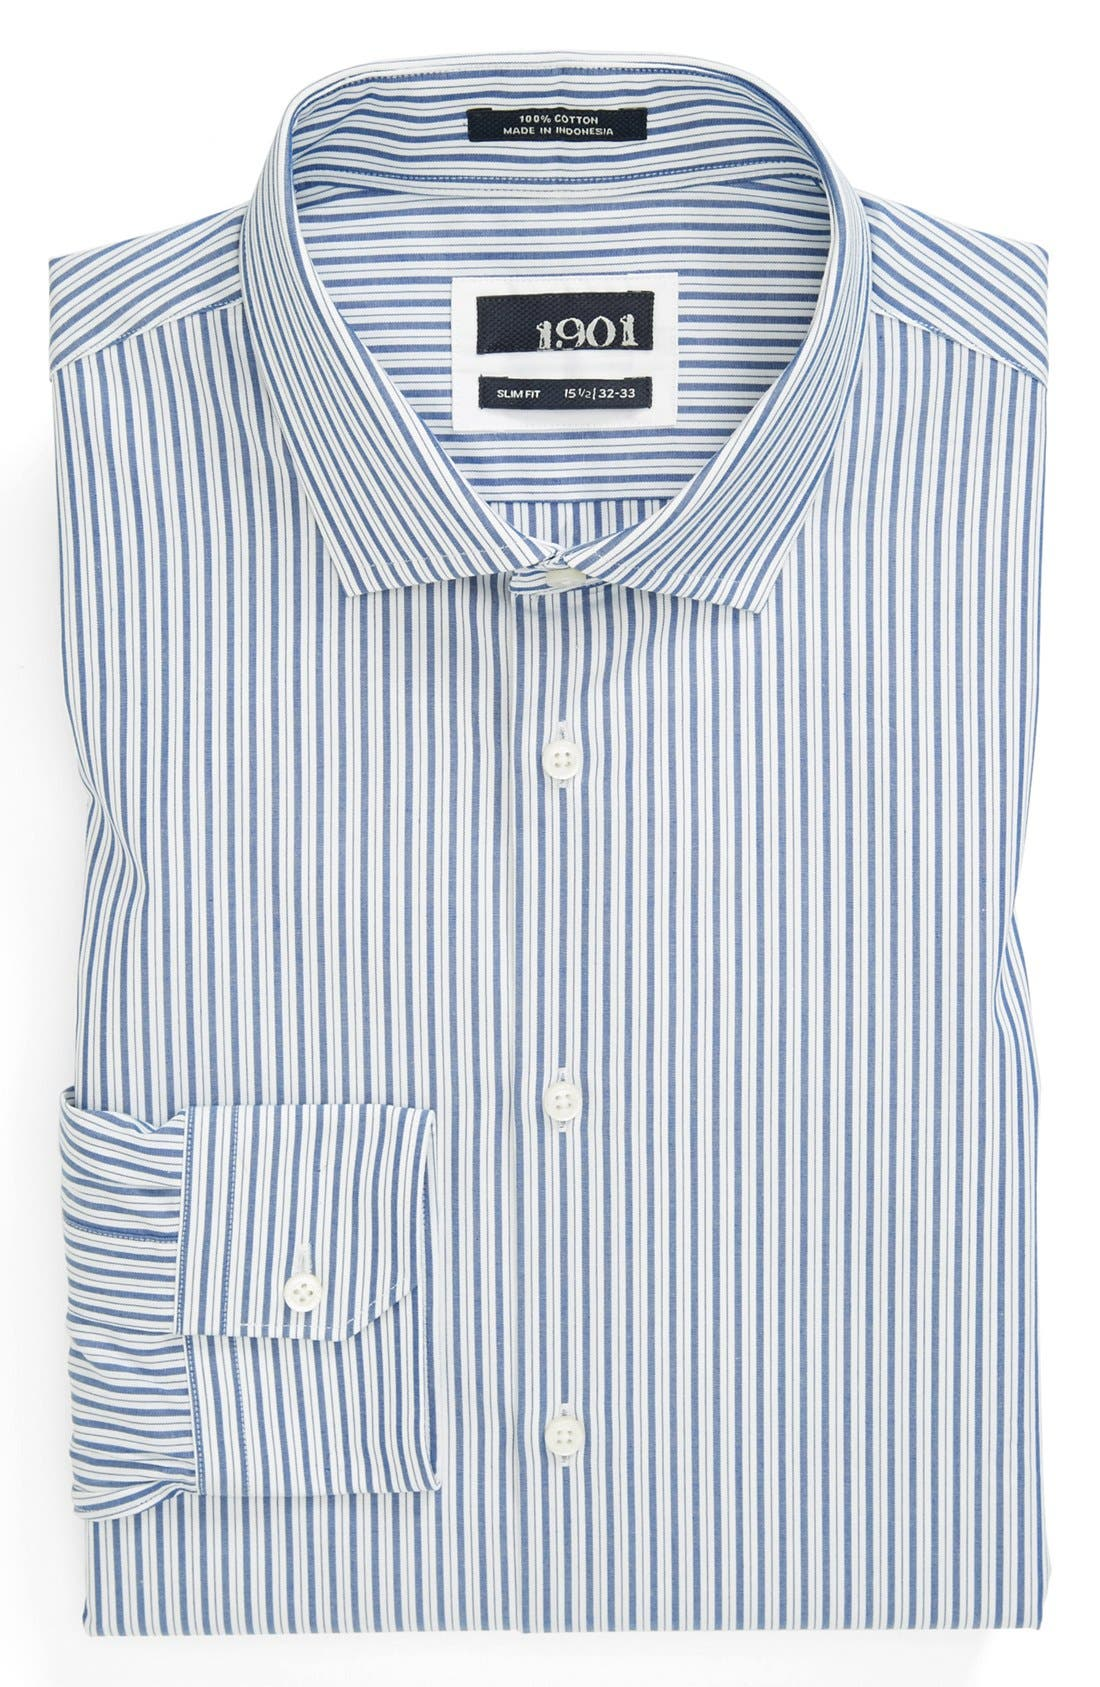 Alternate Image 1 Selected - 1901 Slim Fit Dress Shirt